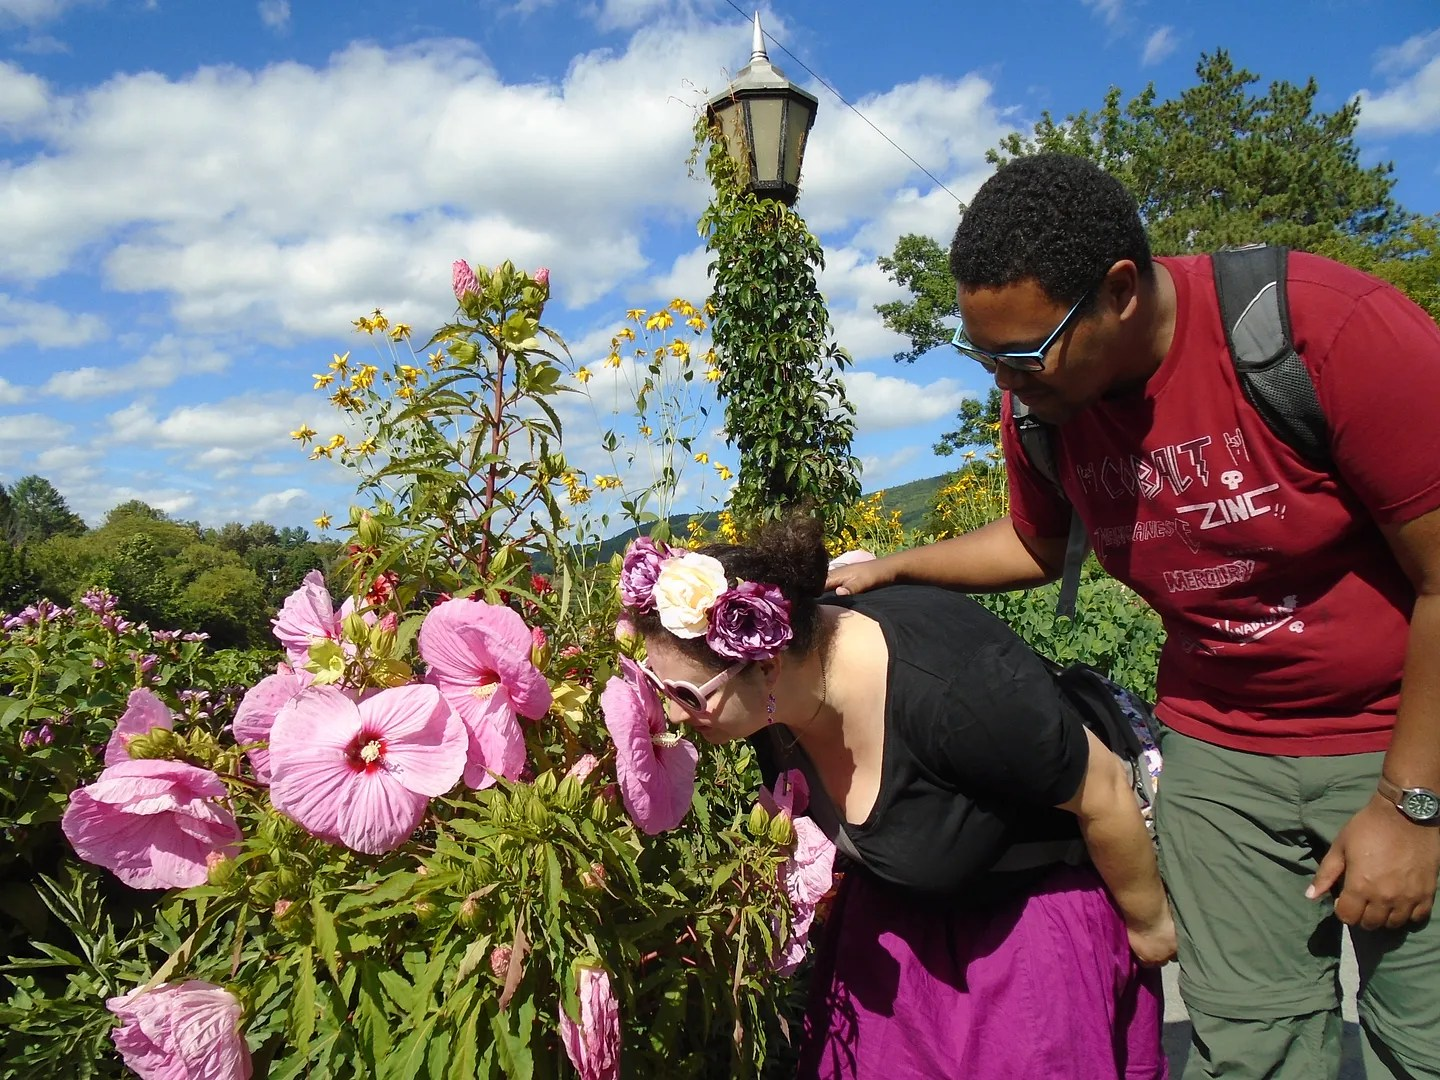 me and steve smelling pink hibiscus flowers on the bridge of flowers in shelburne falls